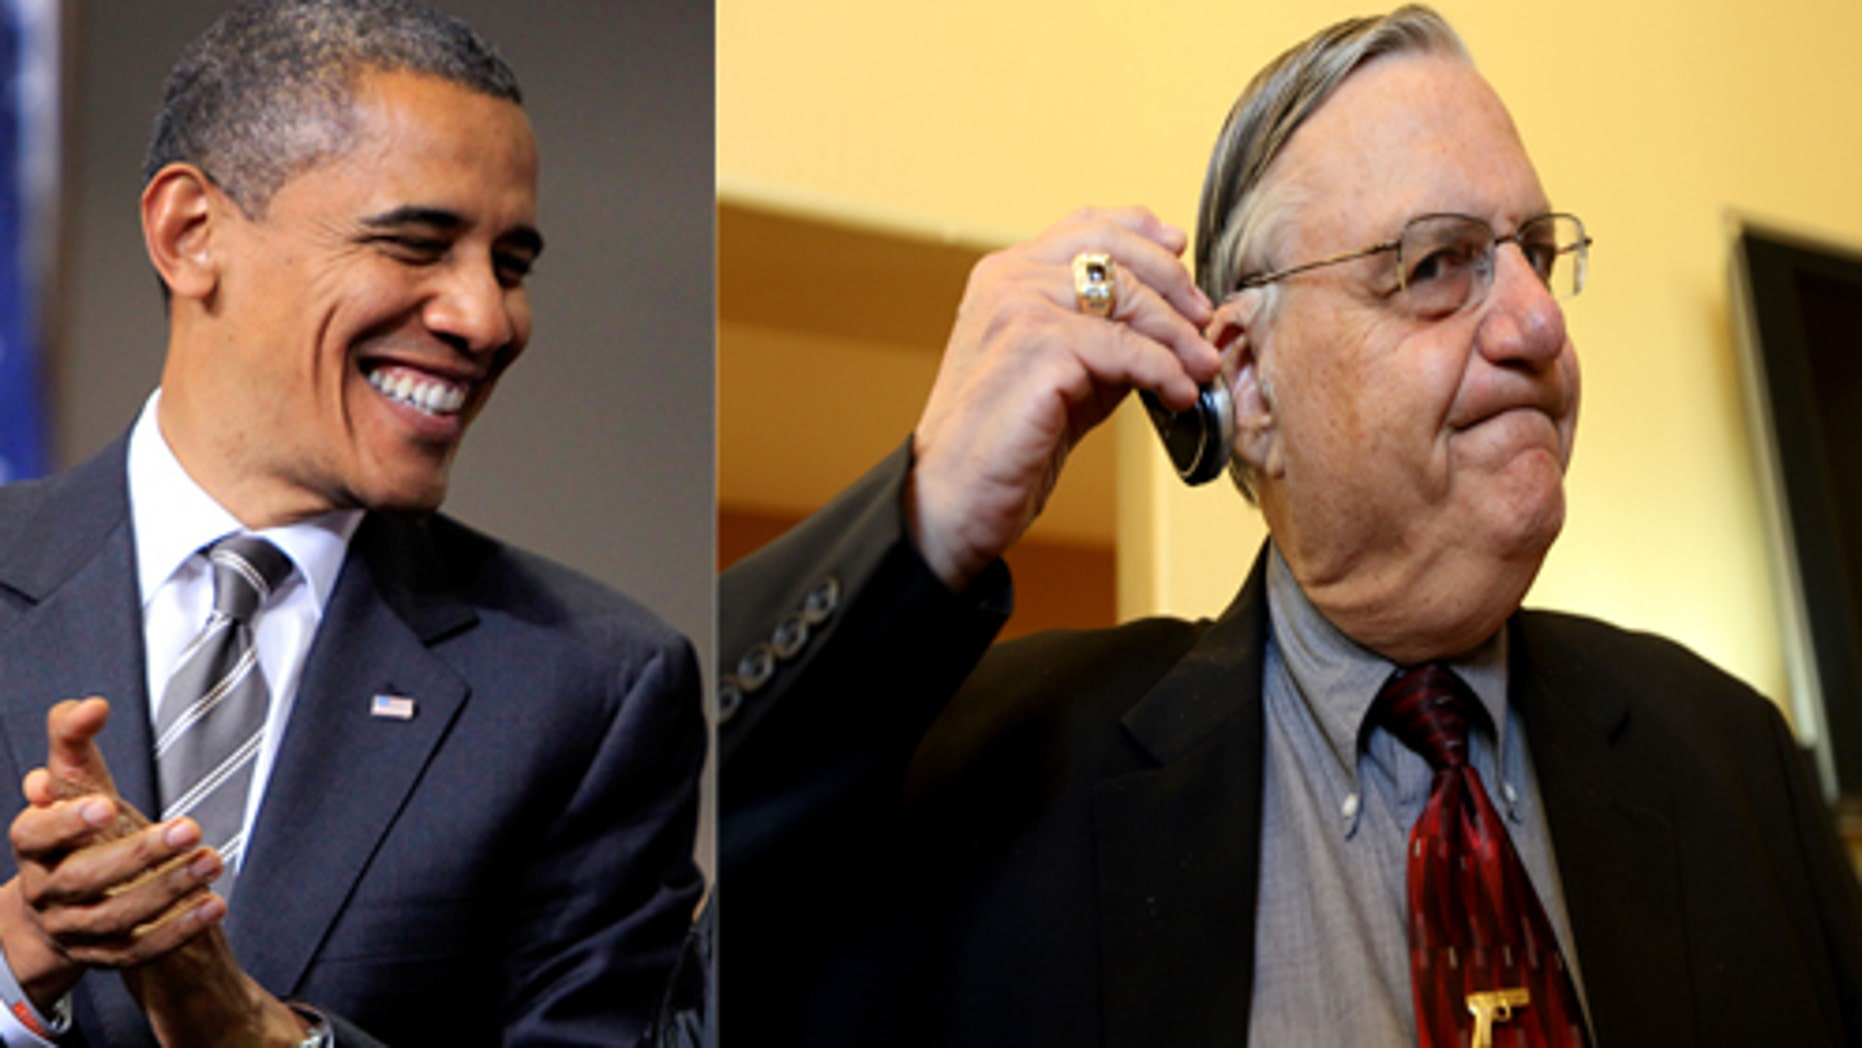 At two different unrelated events, President Barack Obama is on the left and Sheriff Joe Arpaio is pictured on the right.